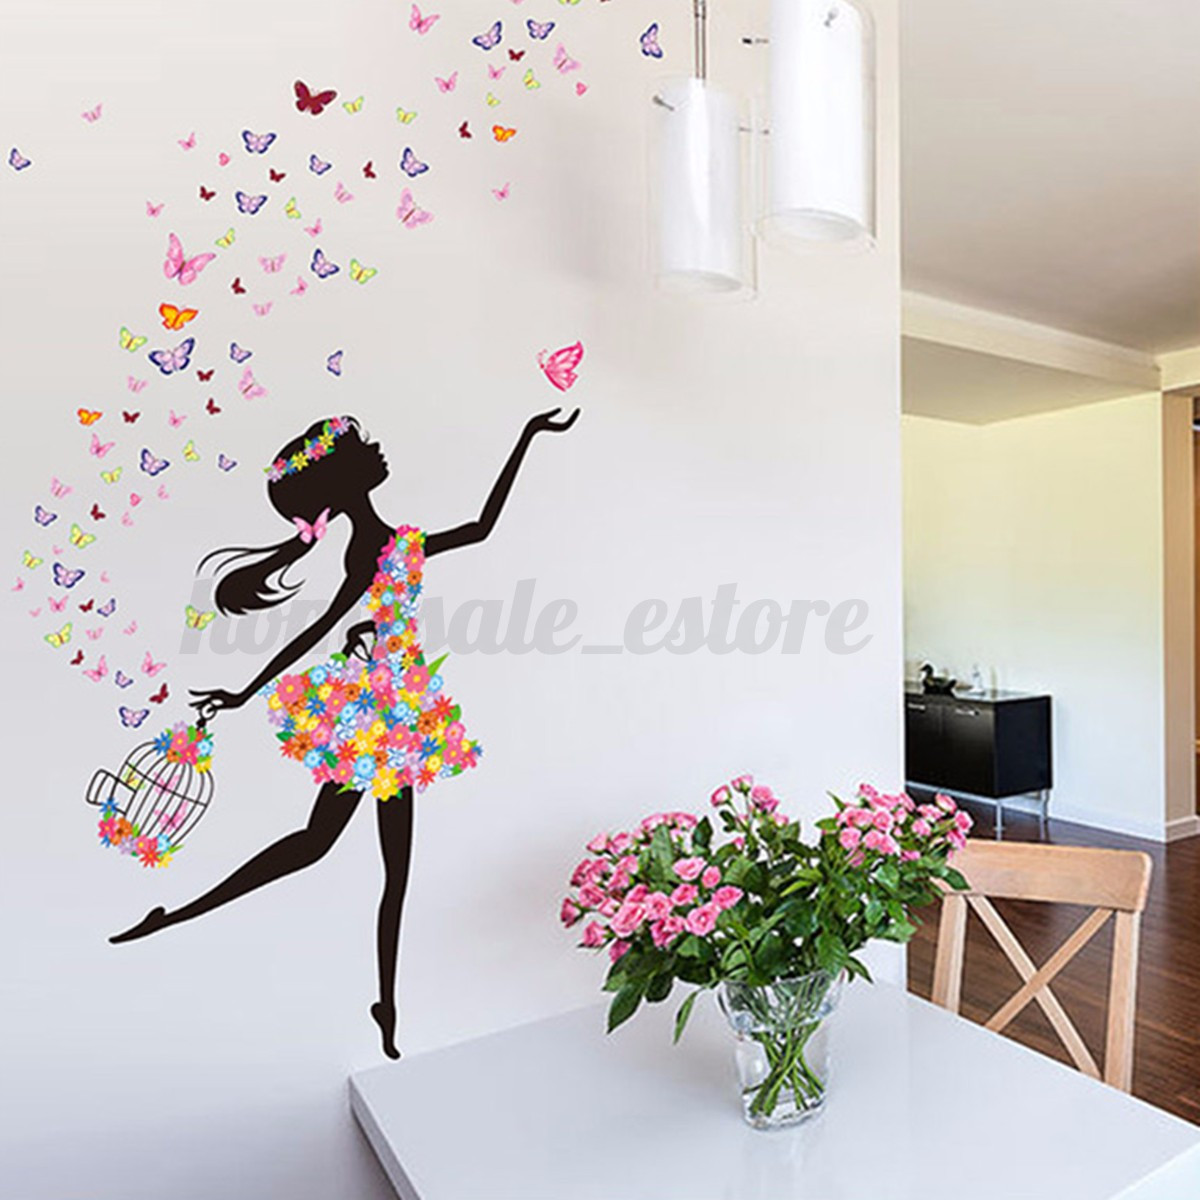 Kids Room Murals: Flower Girl Removable Wall Art Sticker Vinyl Decal Kids